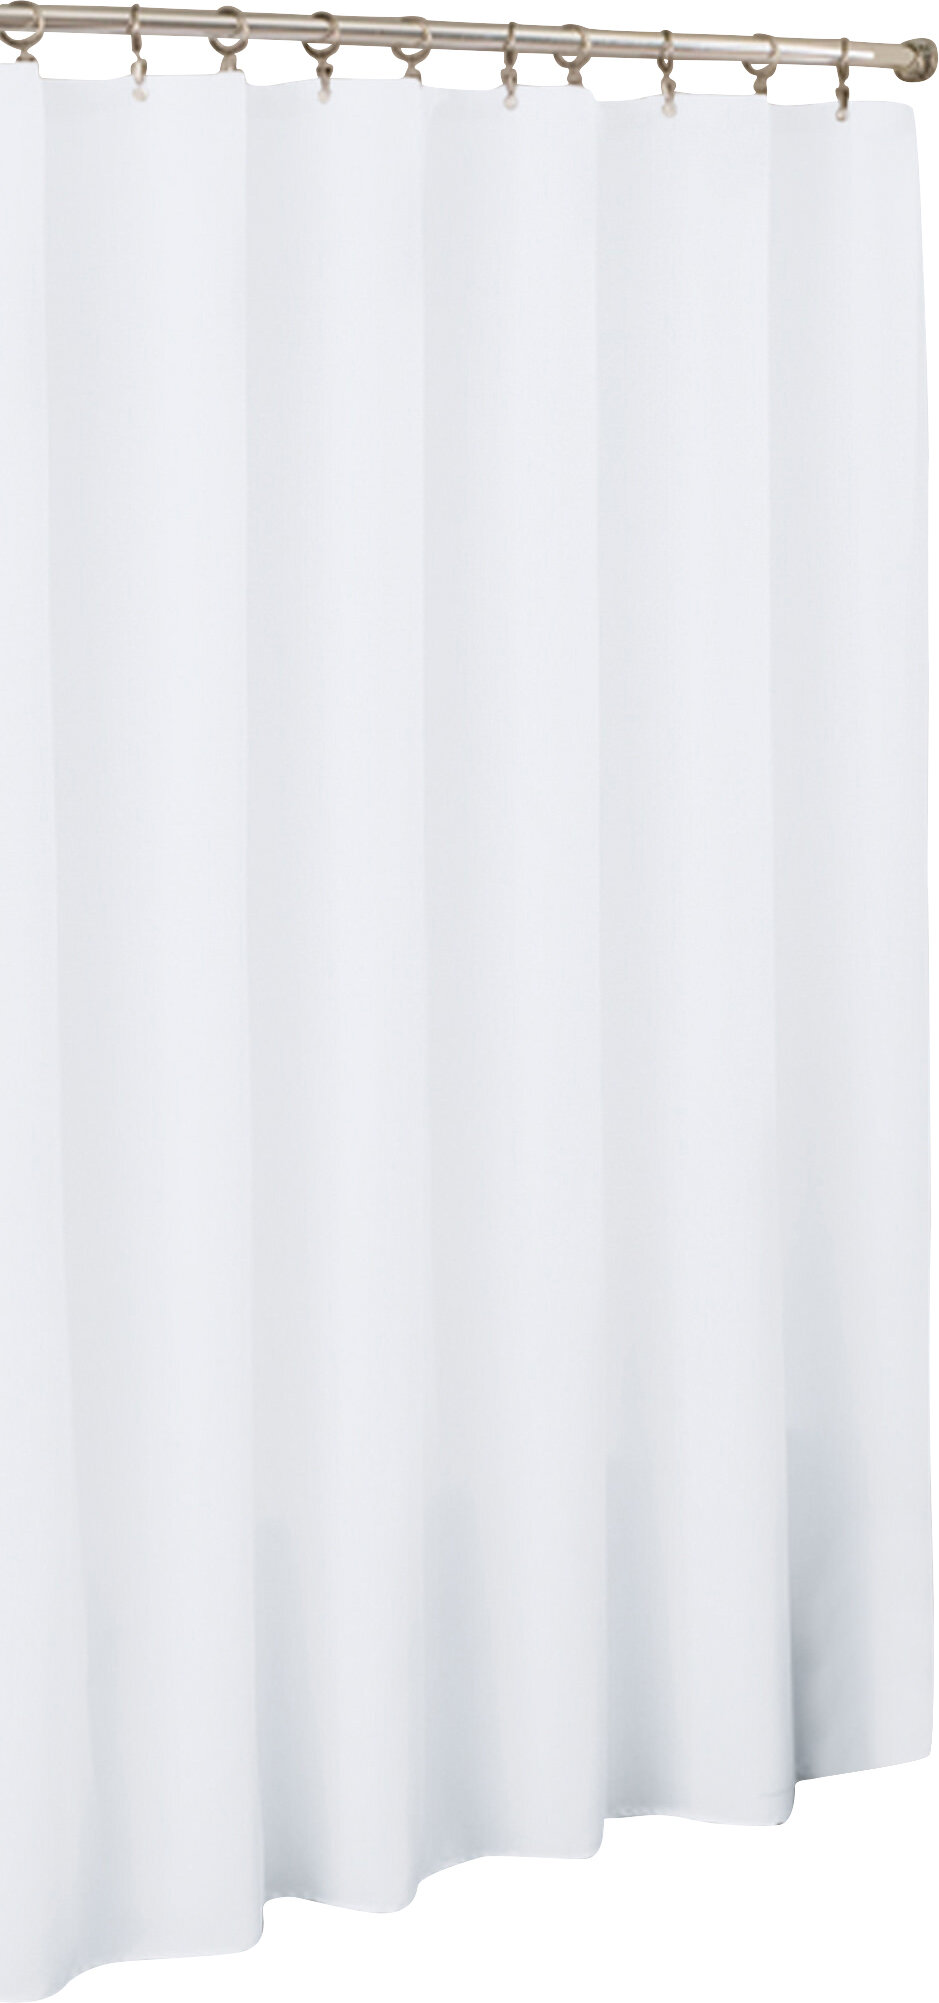 Symple Stuff Vinyl Mildew Resistant Single Shower Curtain Liner Reviews Wayfair